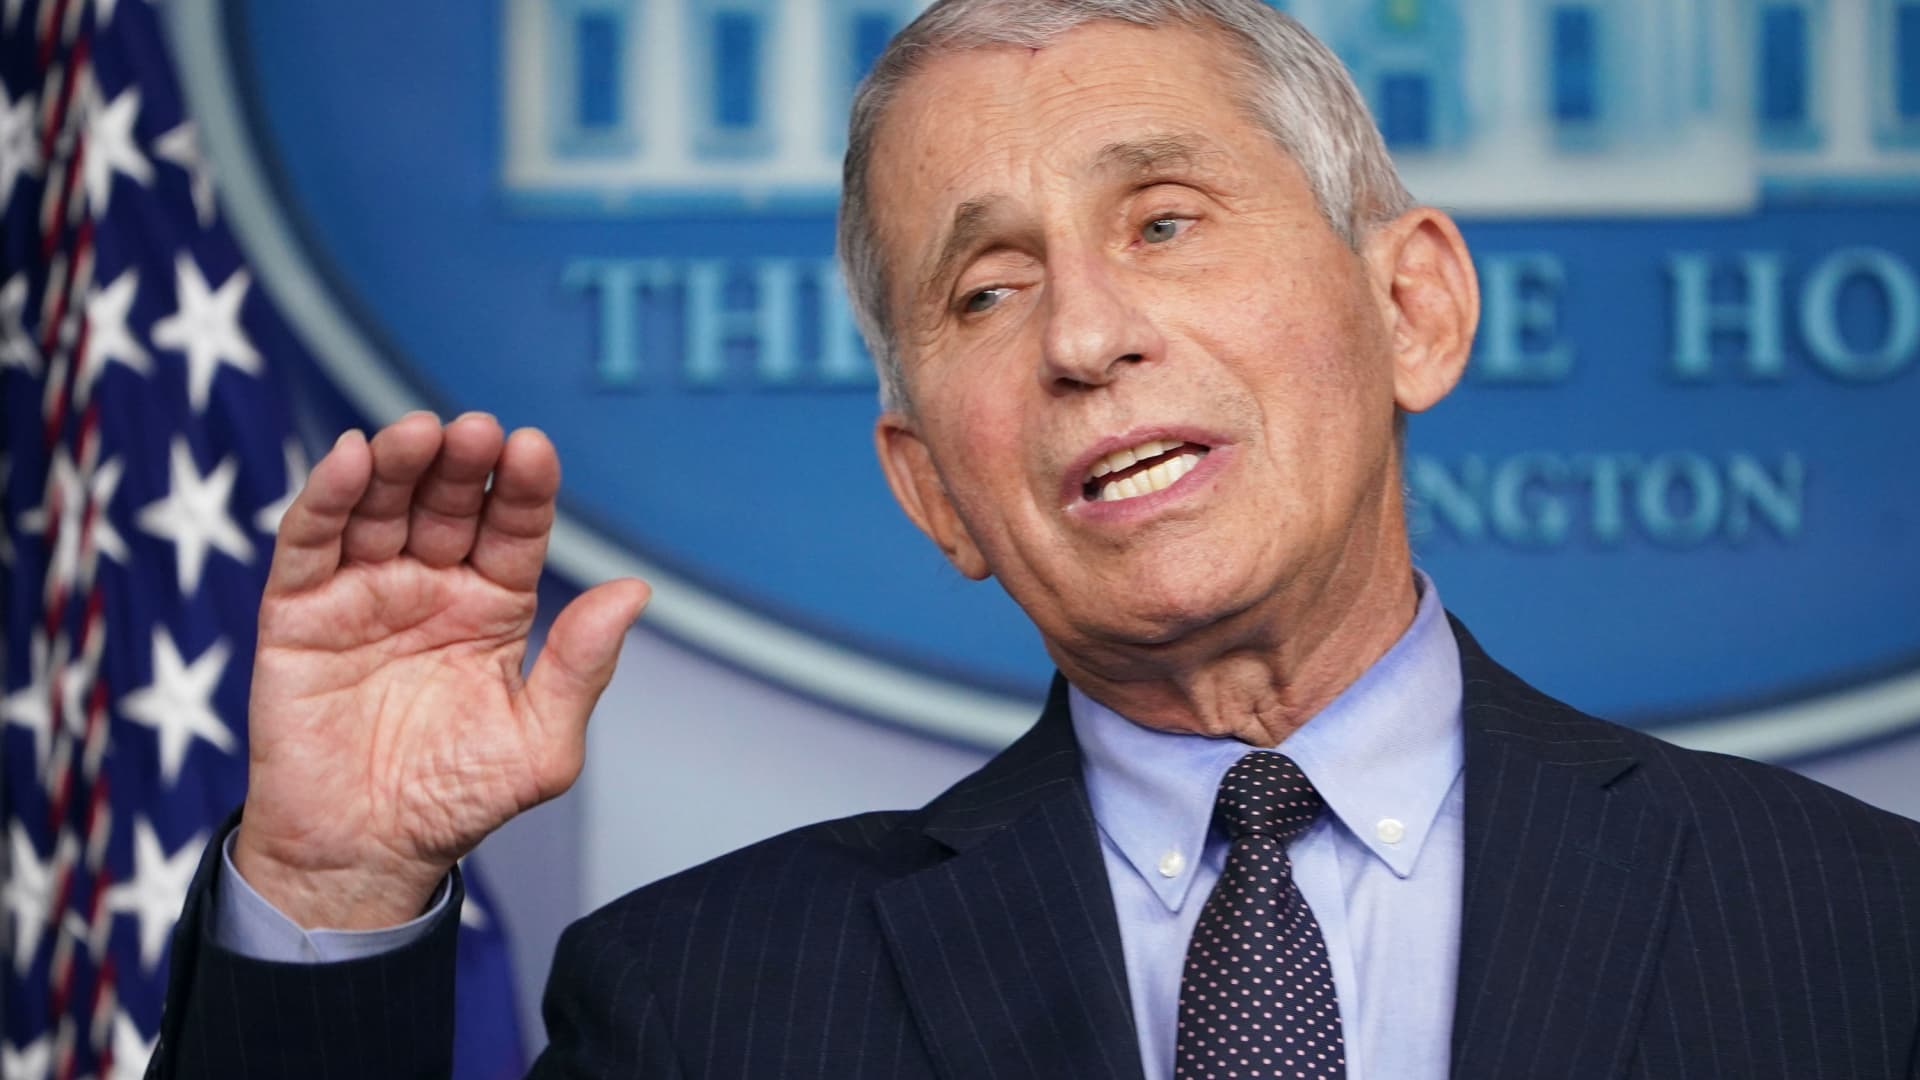 Director of the National Institute of Allergy and Infectious Diseases Anthony Fauci speaks during the daily briefing in the Brady Briefing Room of the White House in Washington, on January 21, 2021.